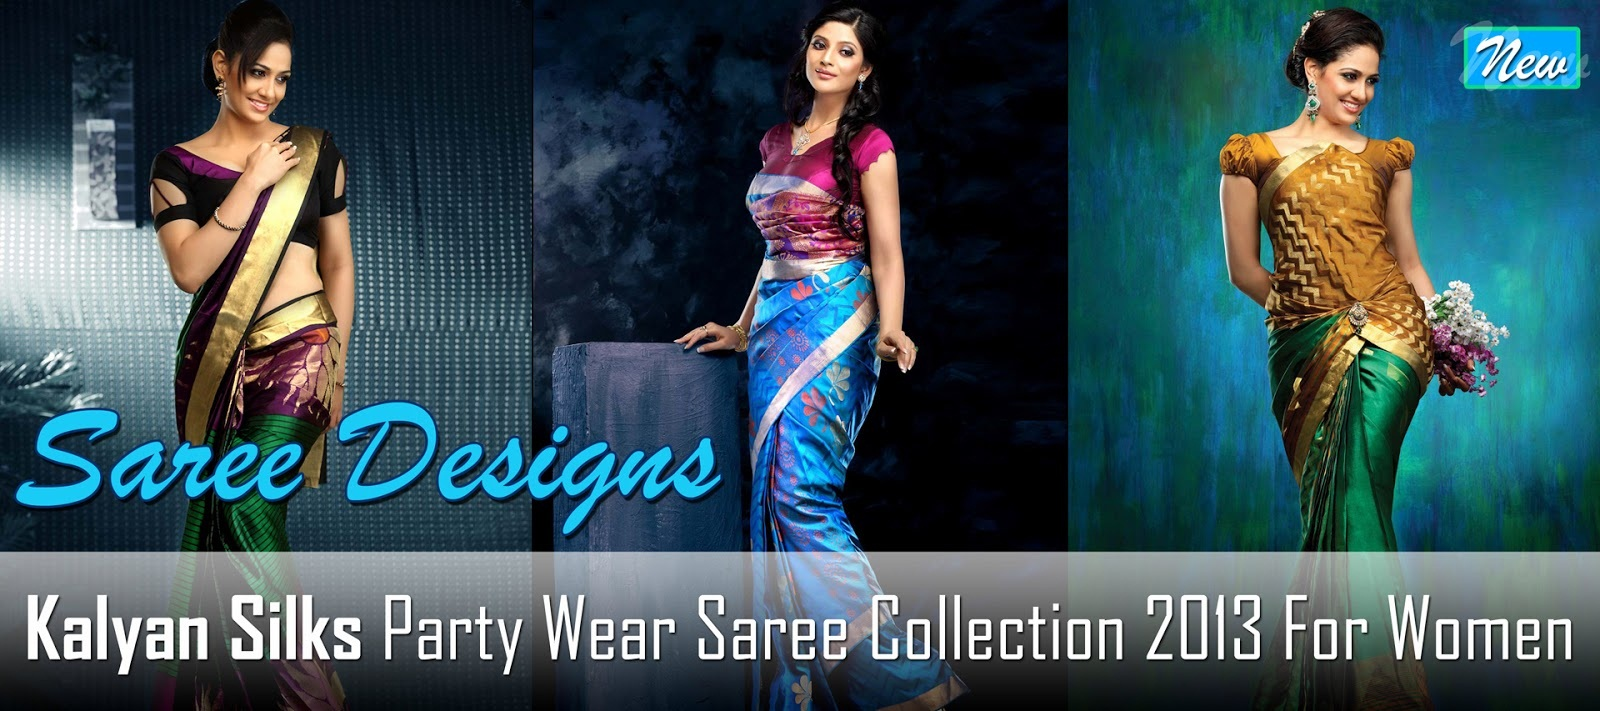 New Fashion Lay Latest Fashion Trend: Latest Kalyan Silk Saree ...